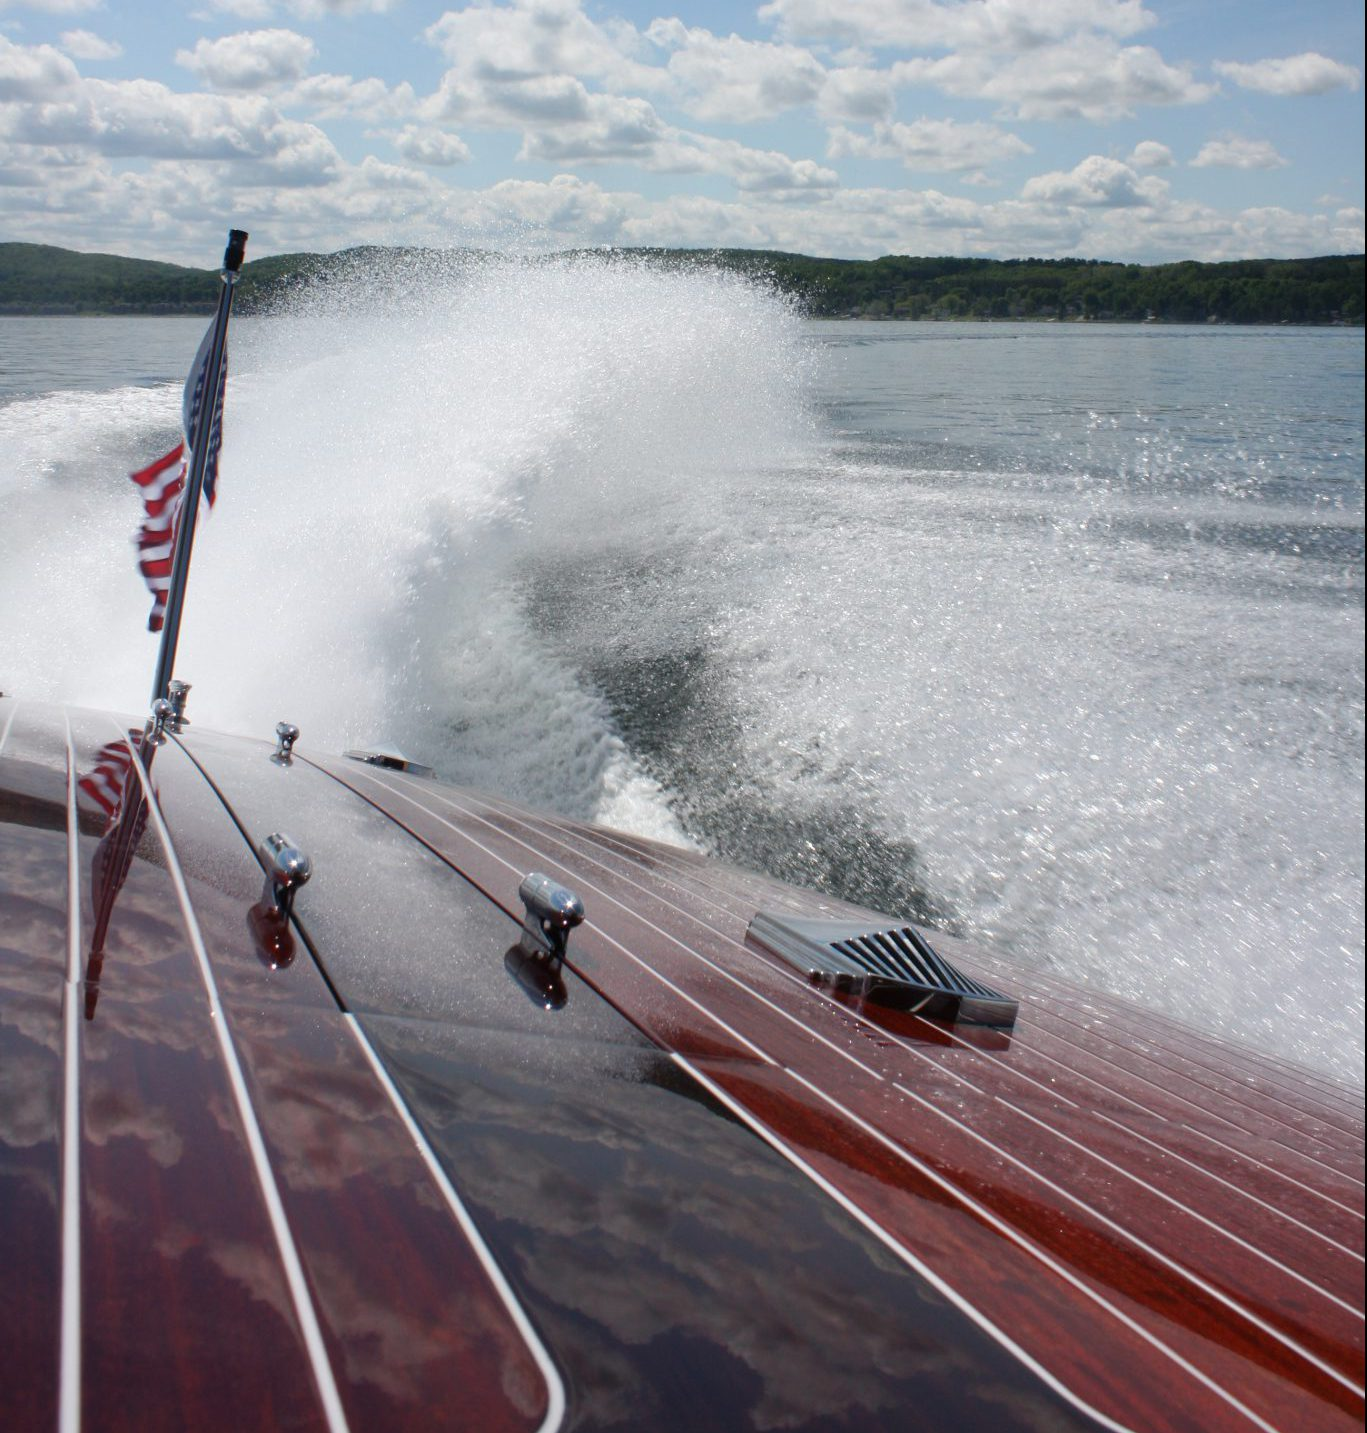 Throwing a wake on Lake Charlevoix